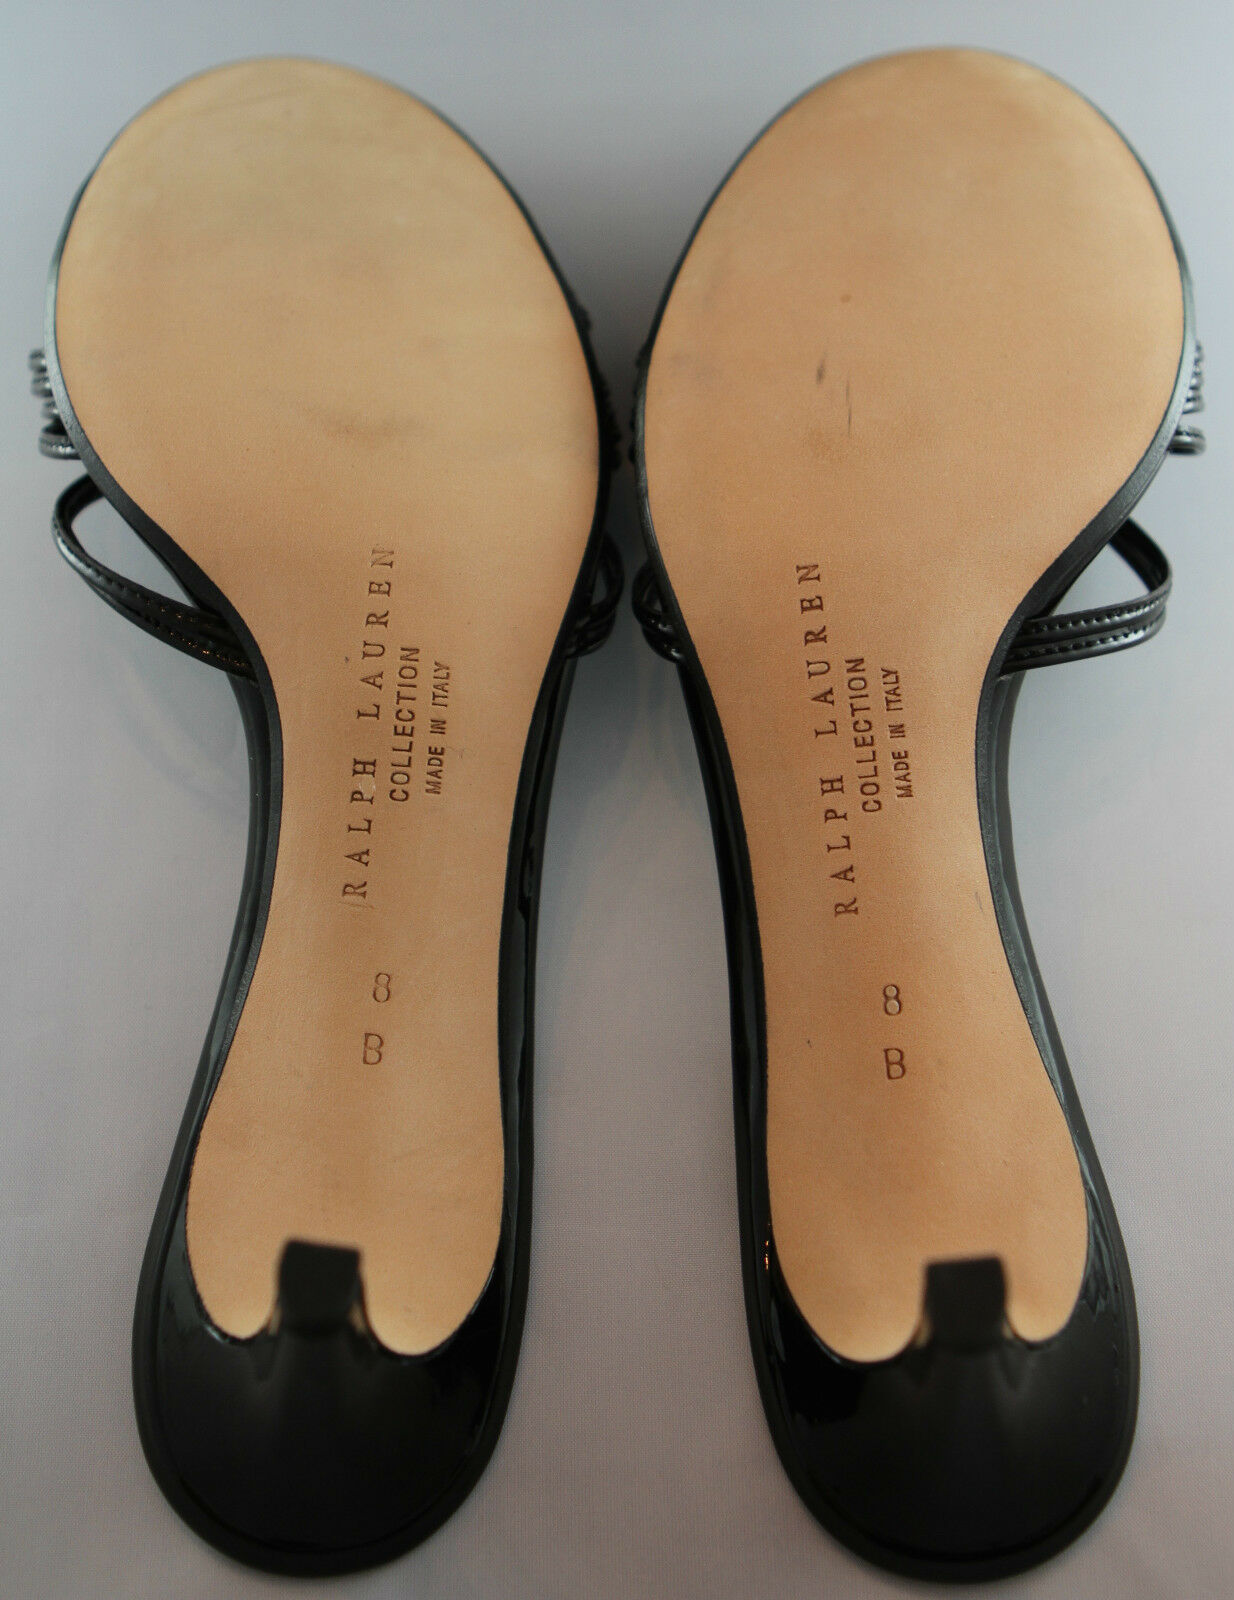 Nouveau Nouveau Nouveau  450 RALPH LAUREN collection Sz 8 Lanières diapositives Sandales 7bf369